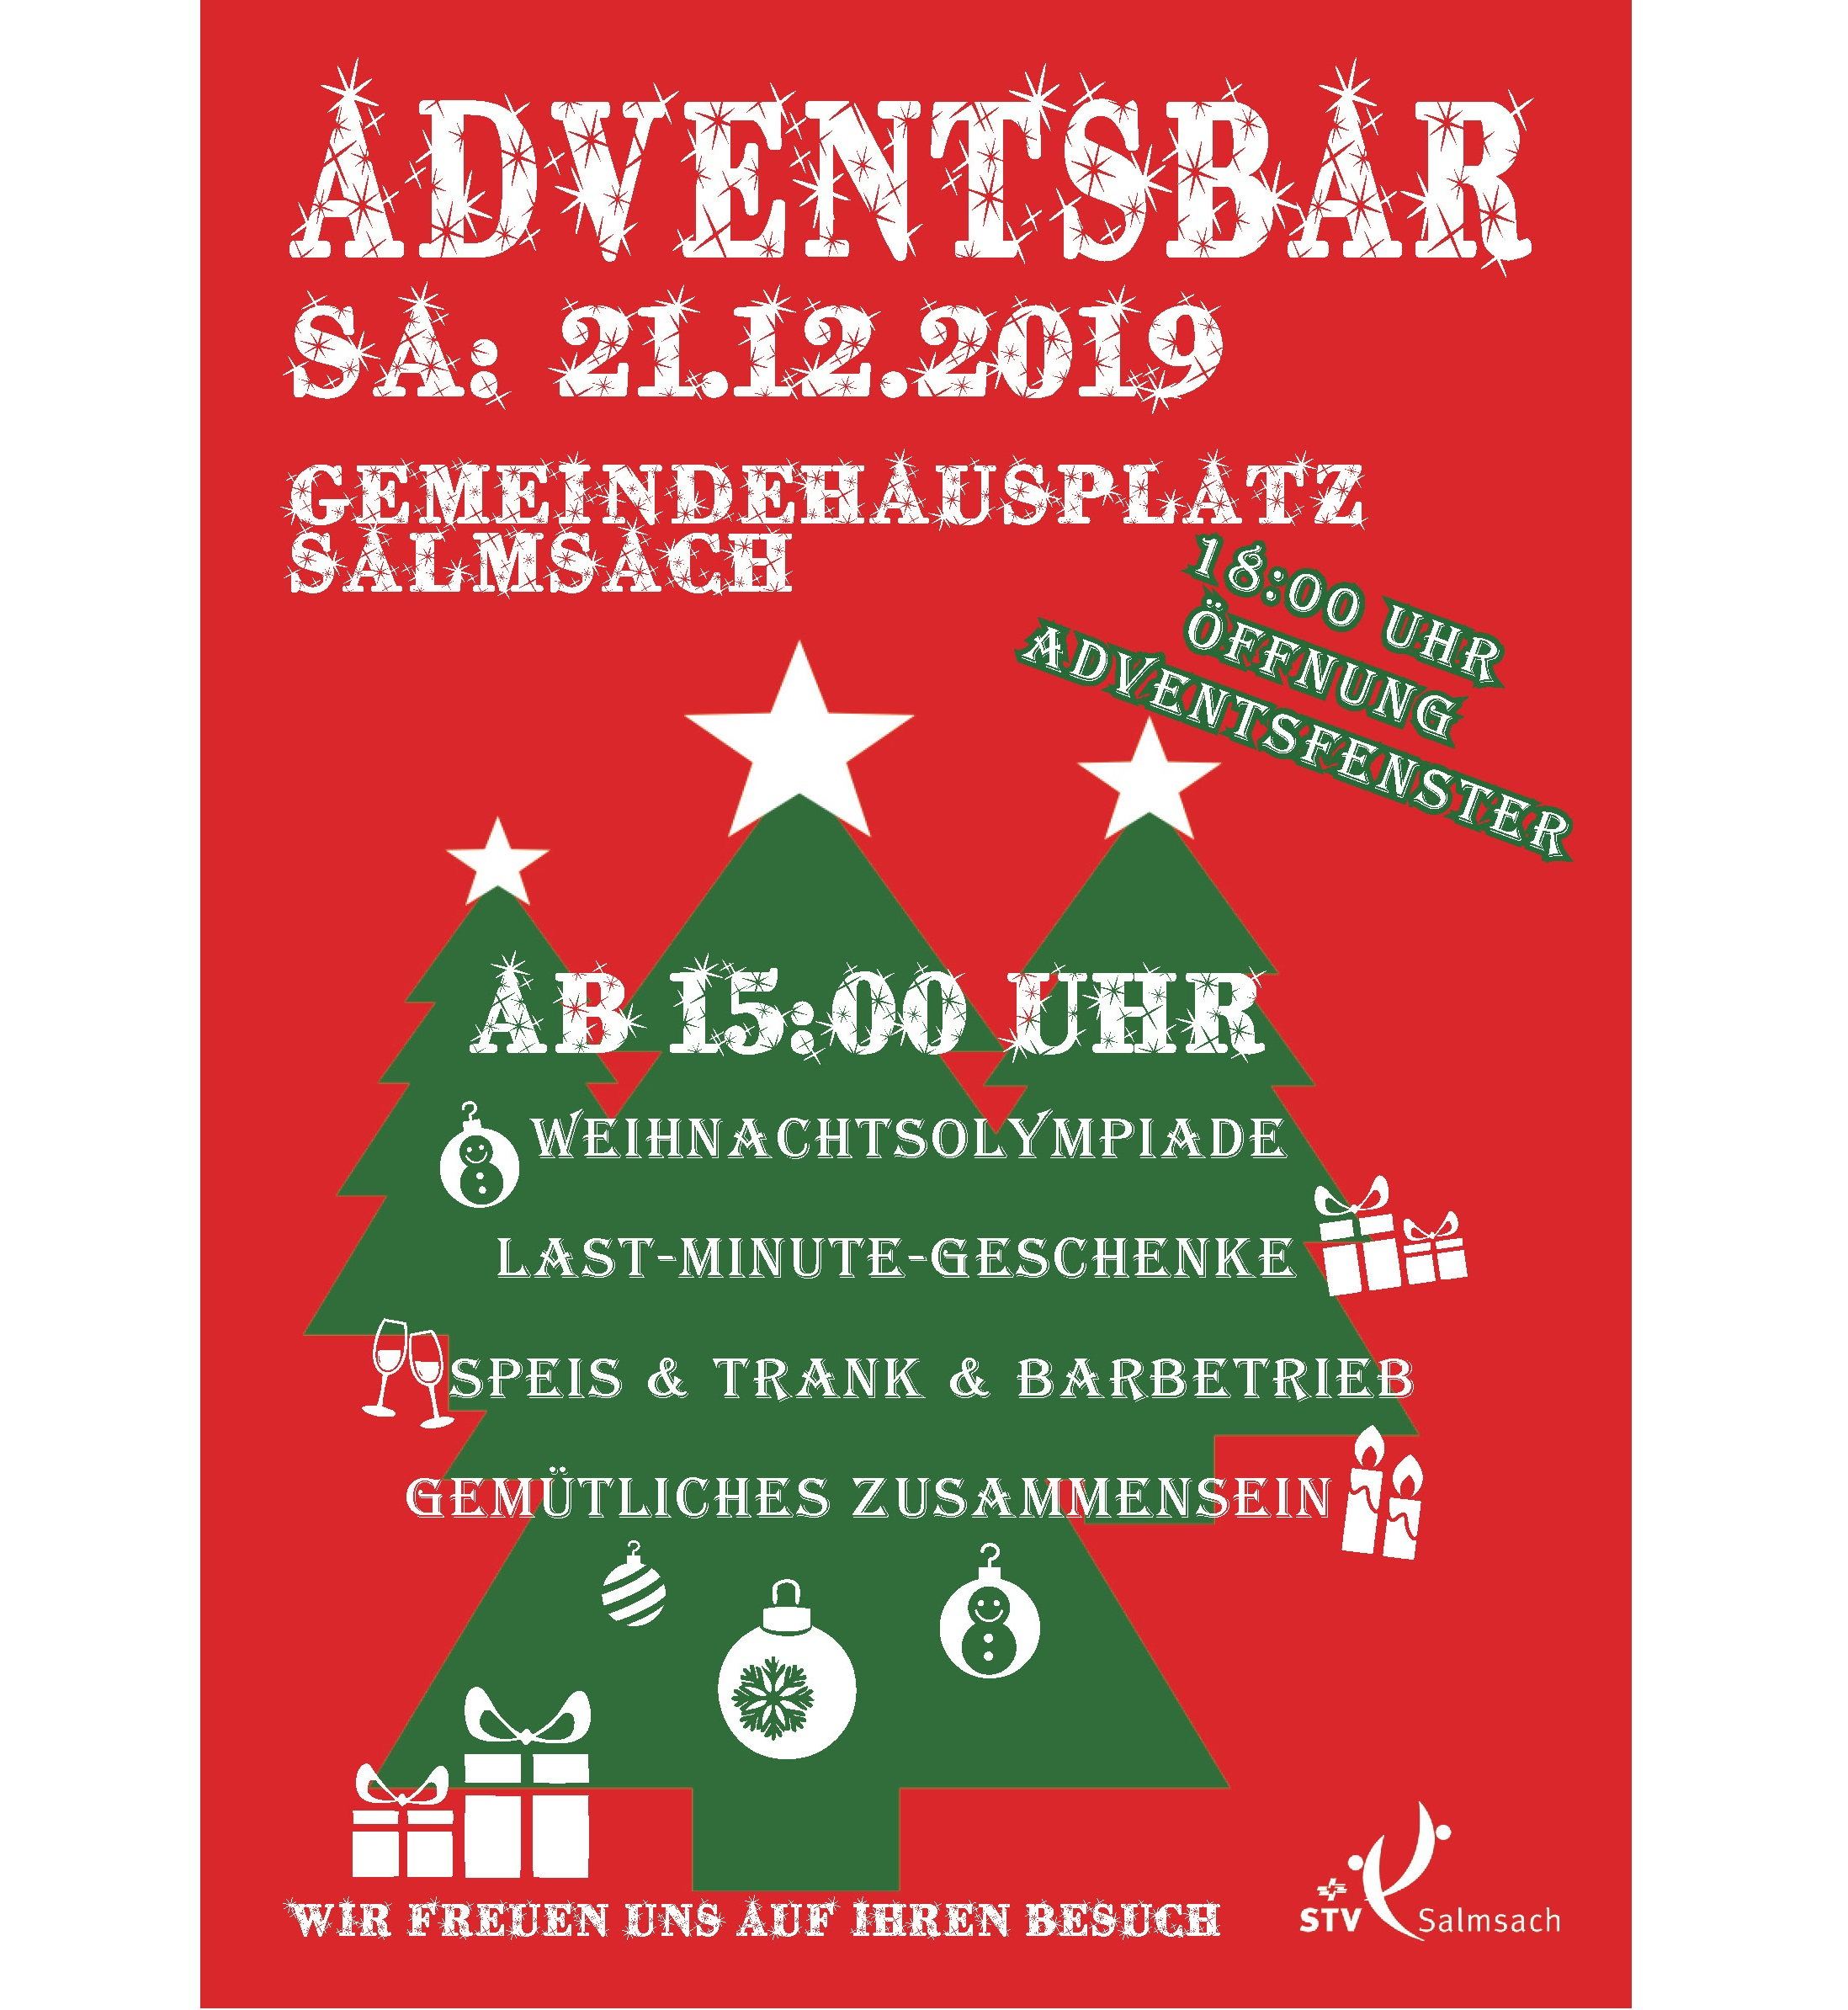 Adventsbar 2019